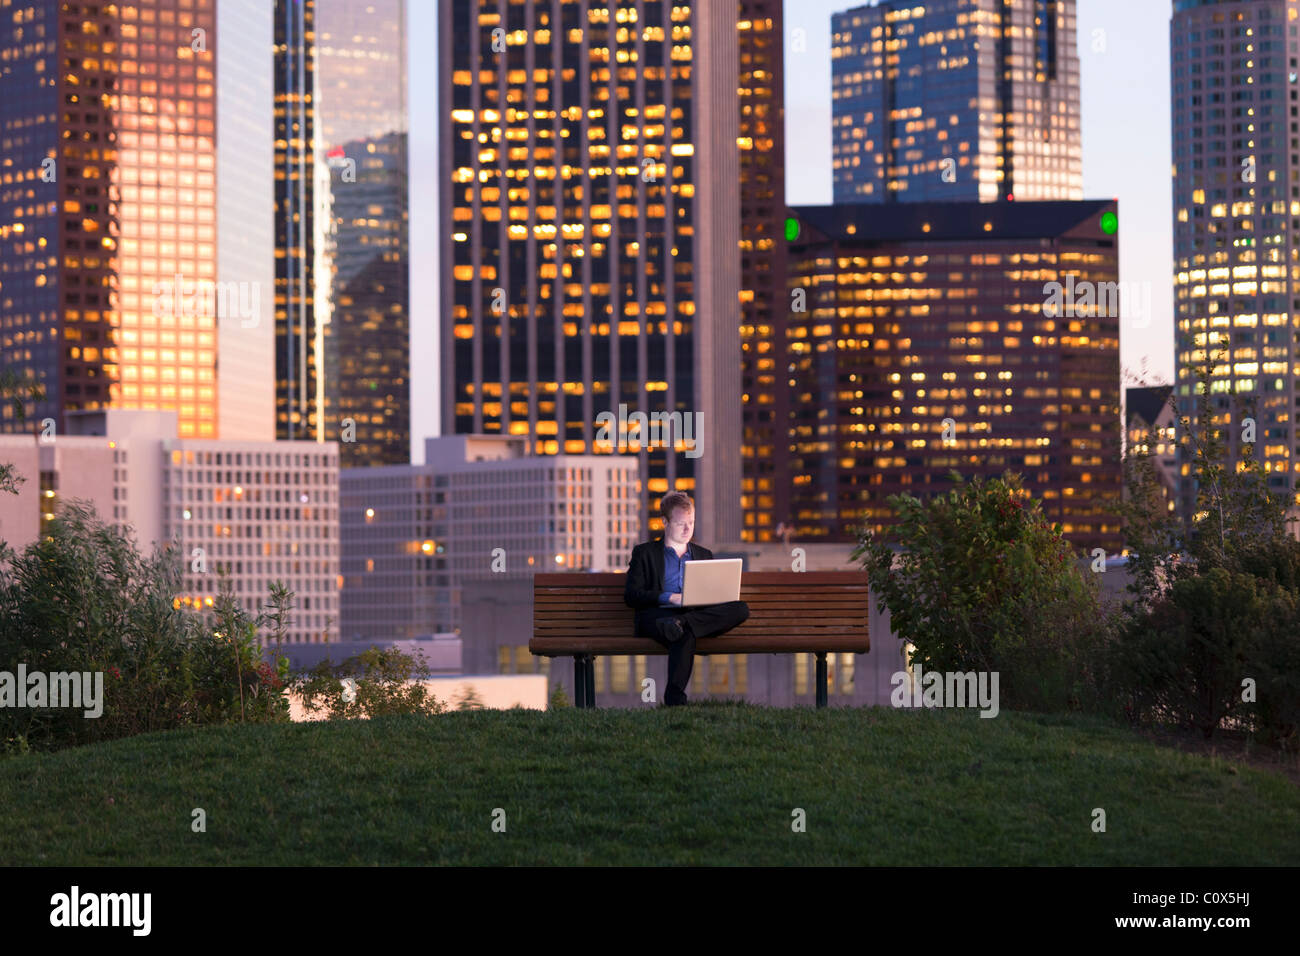 Male sitting on park bench working on laptop computer with Los Angeles city skyline in background at dusk, sunset - Stock Image